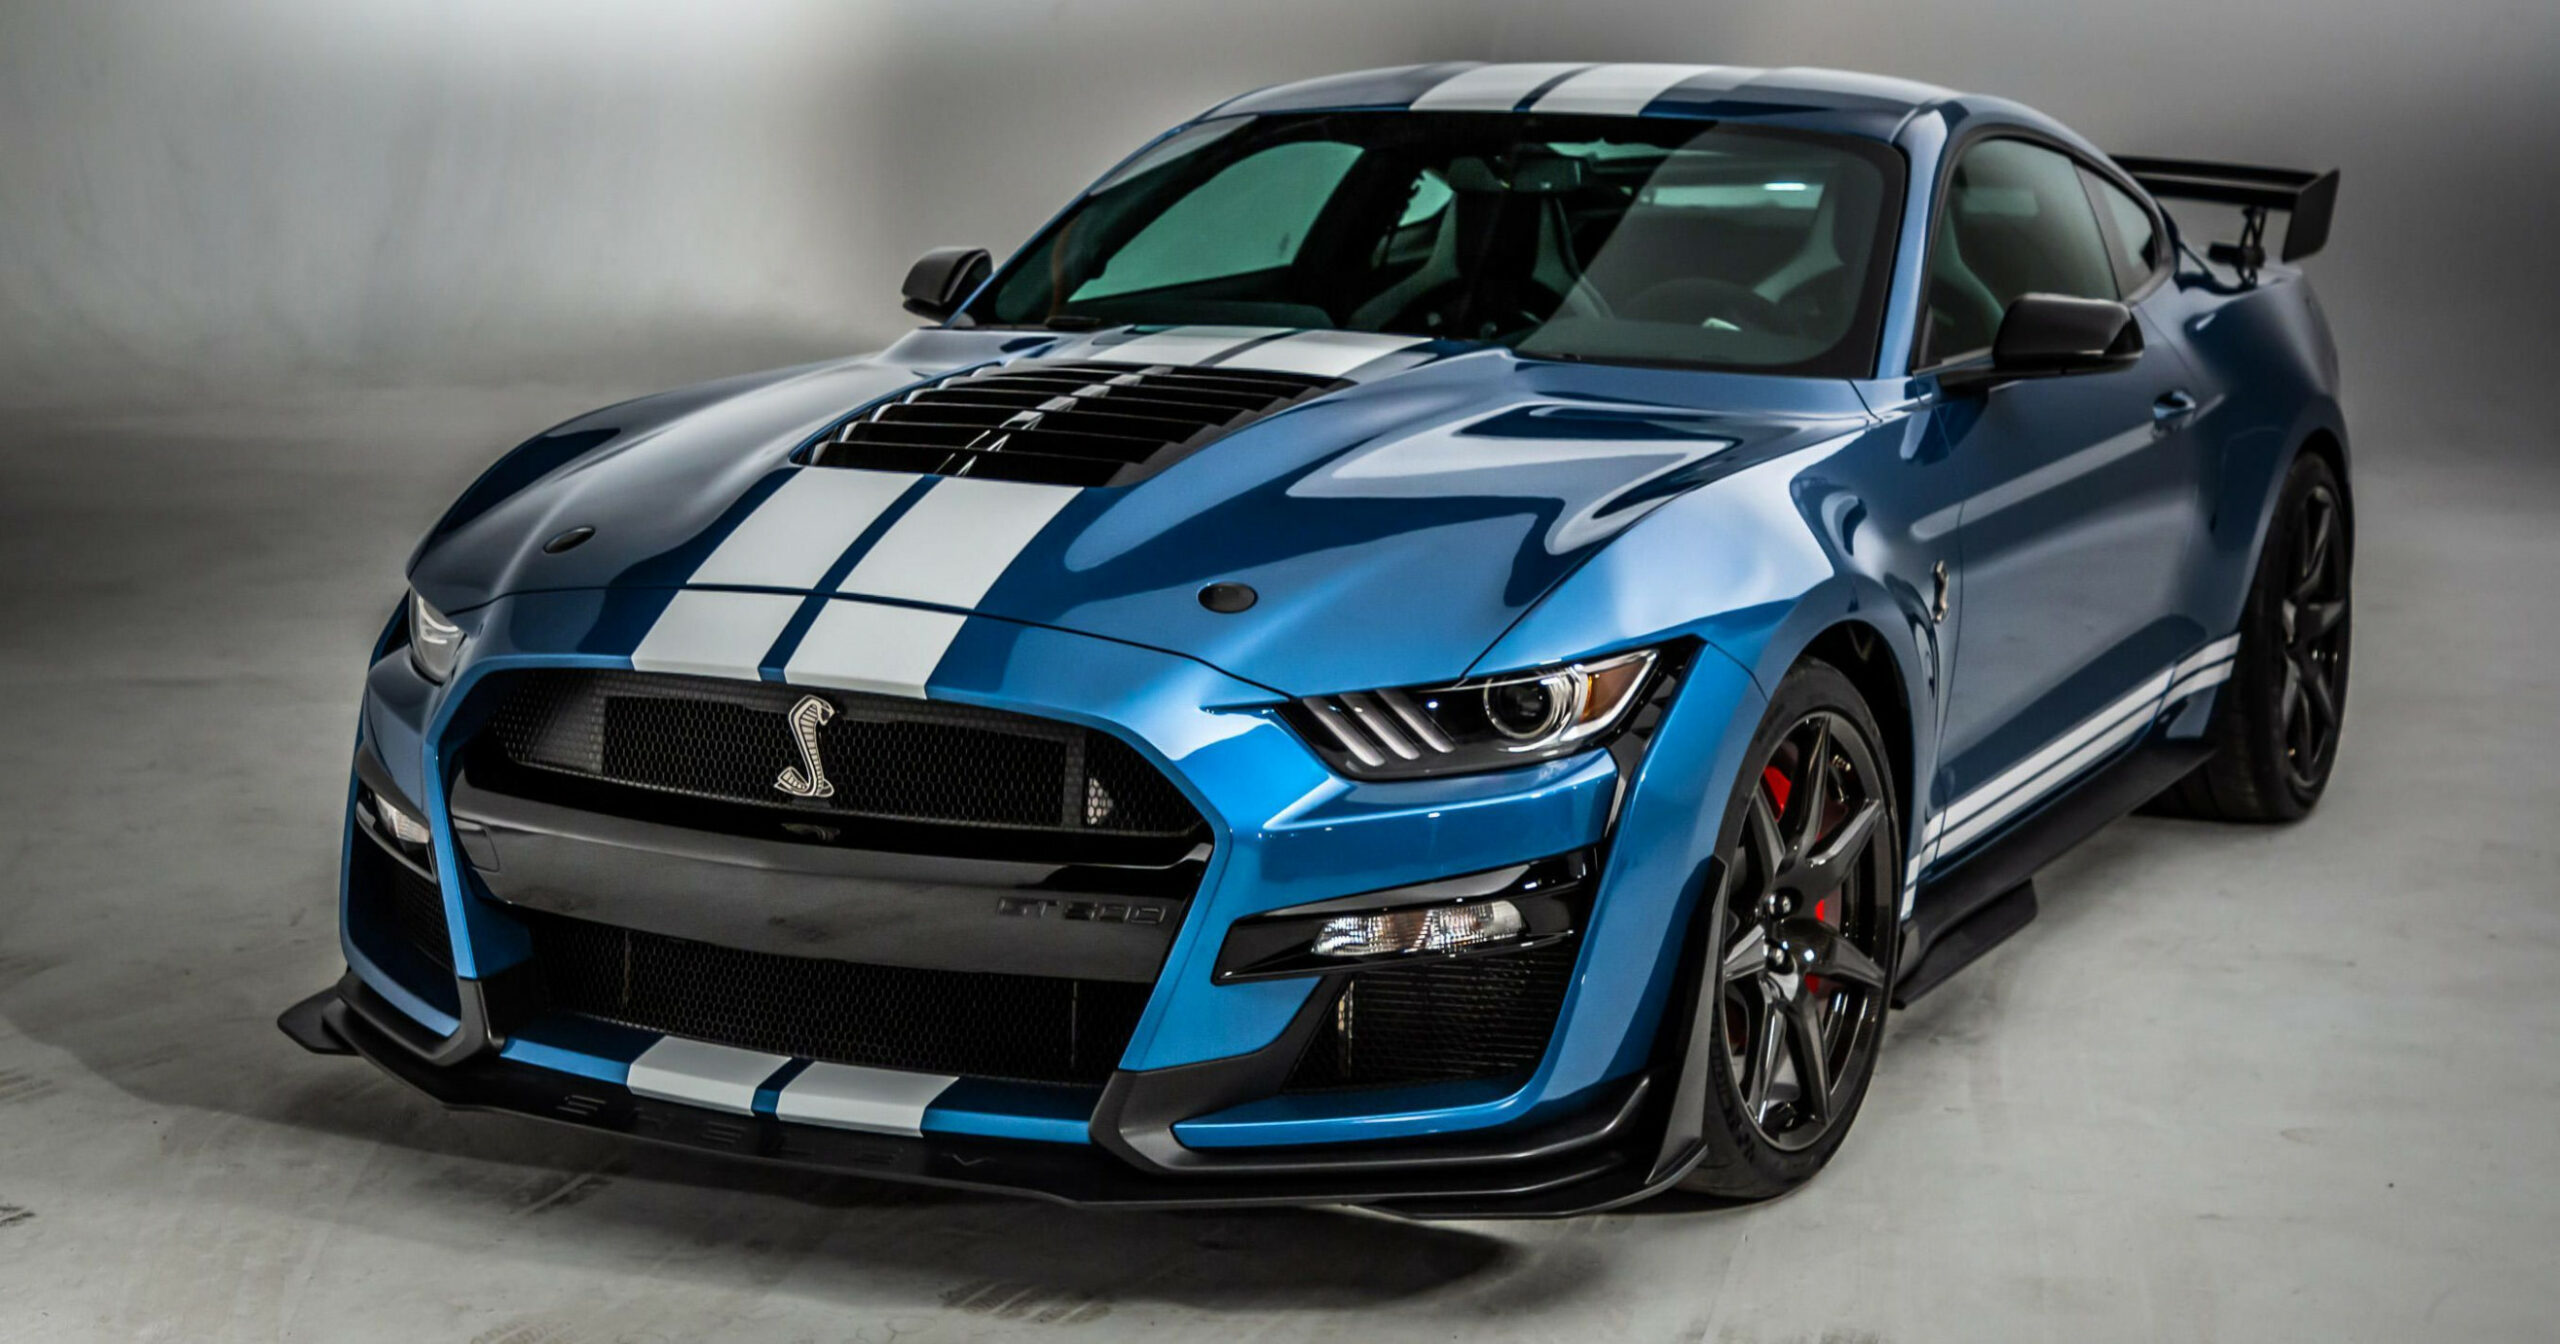 12 Ford Mustang Shelby GT12 is a friendlier brawler | Ford ..